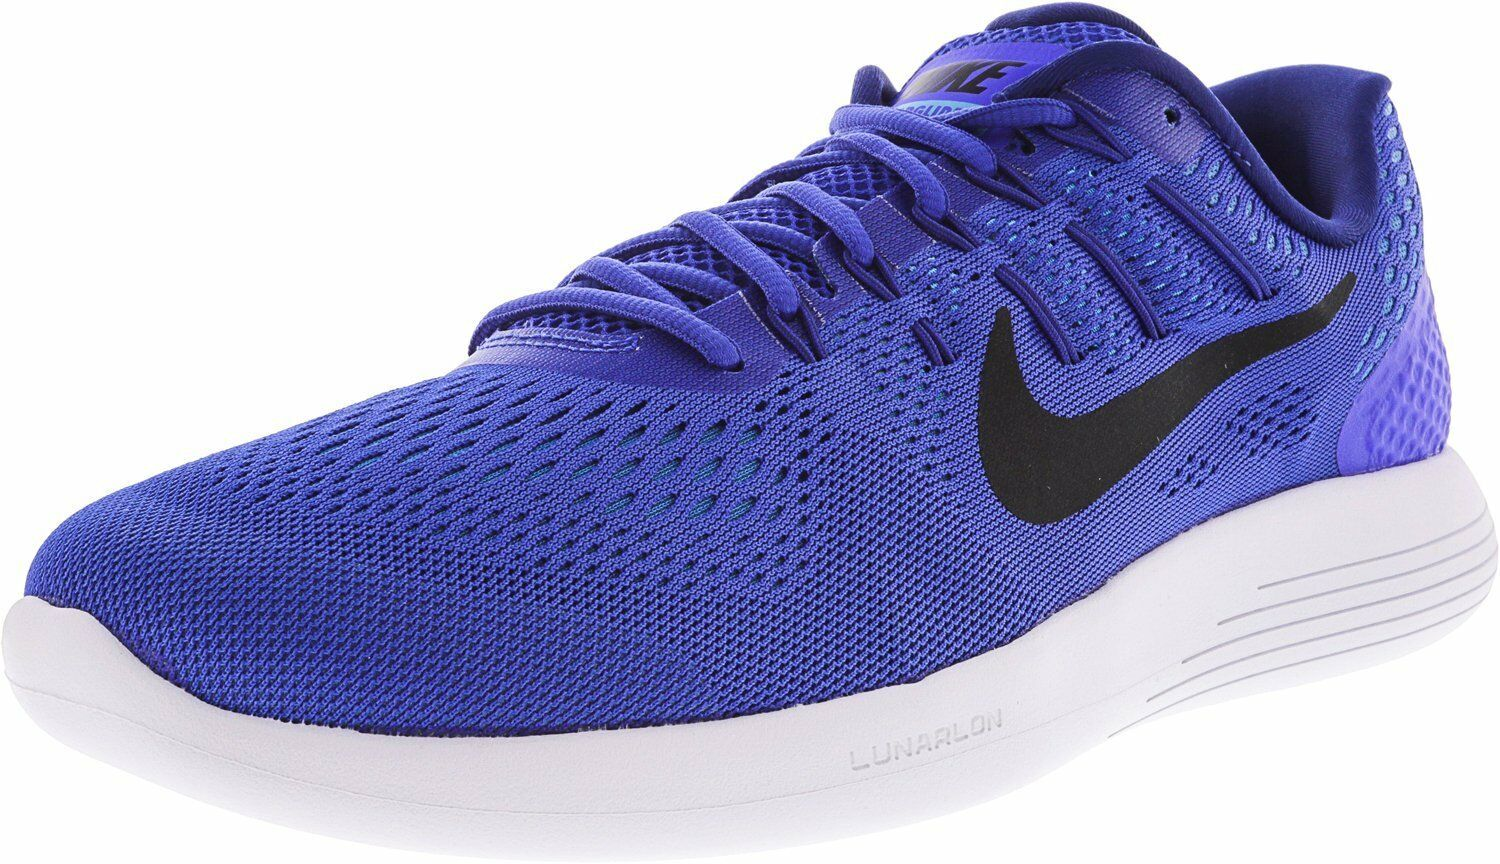 Seasonal price cuts, discount benefits Nike Mens Lunarglide 8 Black / White - Anthracite Racer Blue/Black 11.5 DPrice reduction US